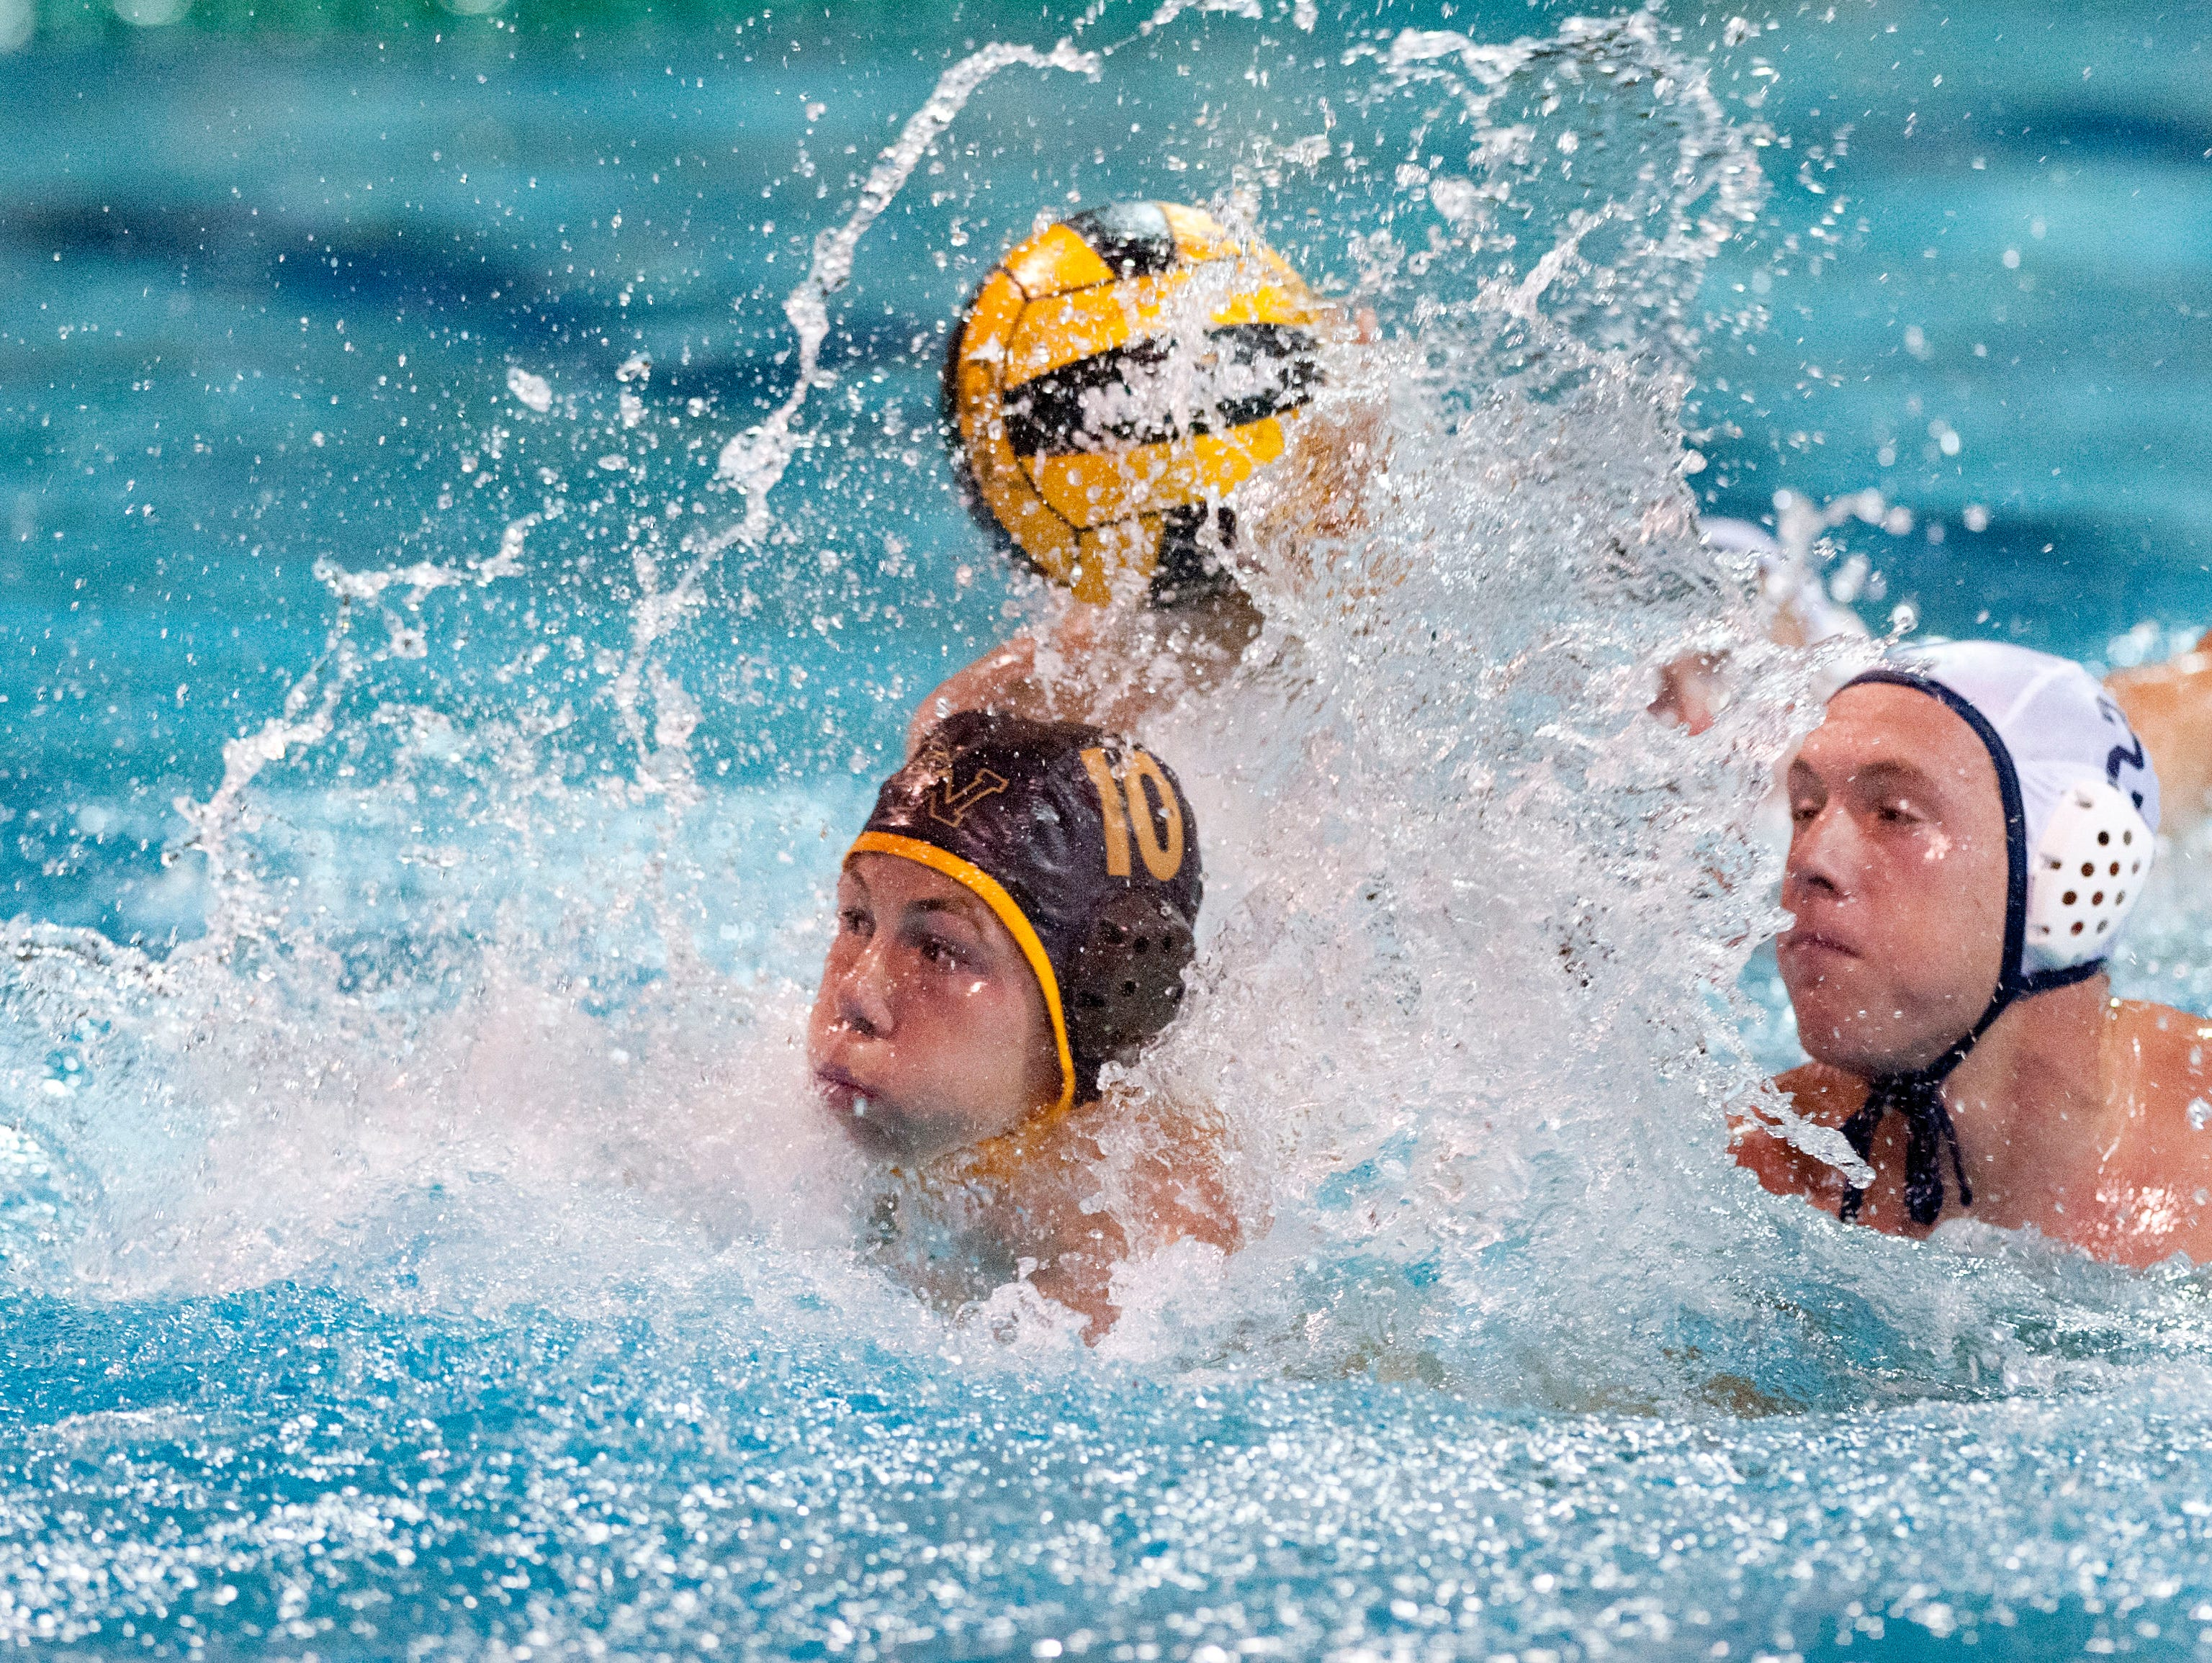 Golden West's Sawyer Nordell under pressure from Redwood's Sam Peckinpah in WYL boys water polo on Wednesday, October 8, 2014.